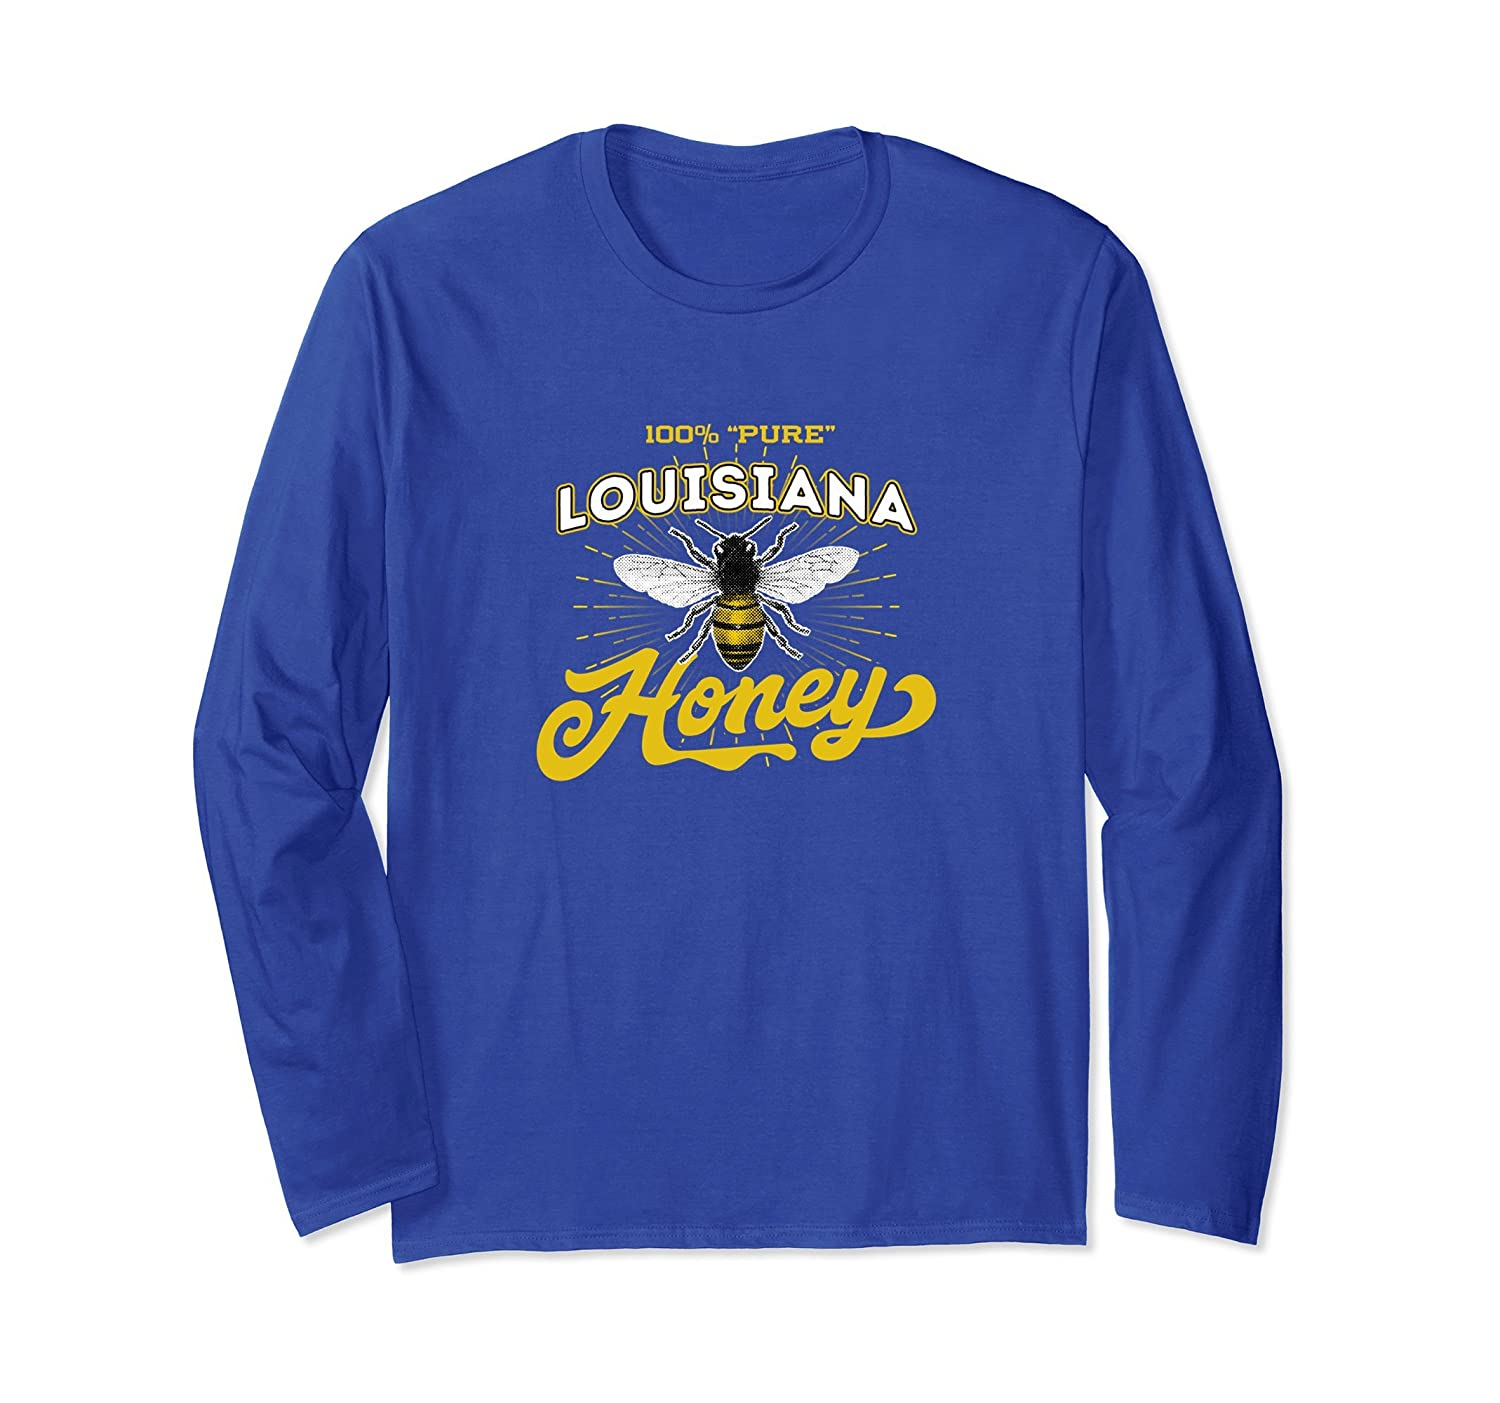 100% Pure Louisiana Honey Retro Label Long Sleeve Shirt-ah my shirt one gift